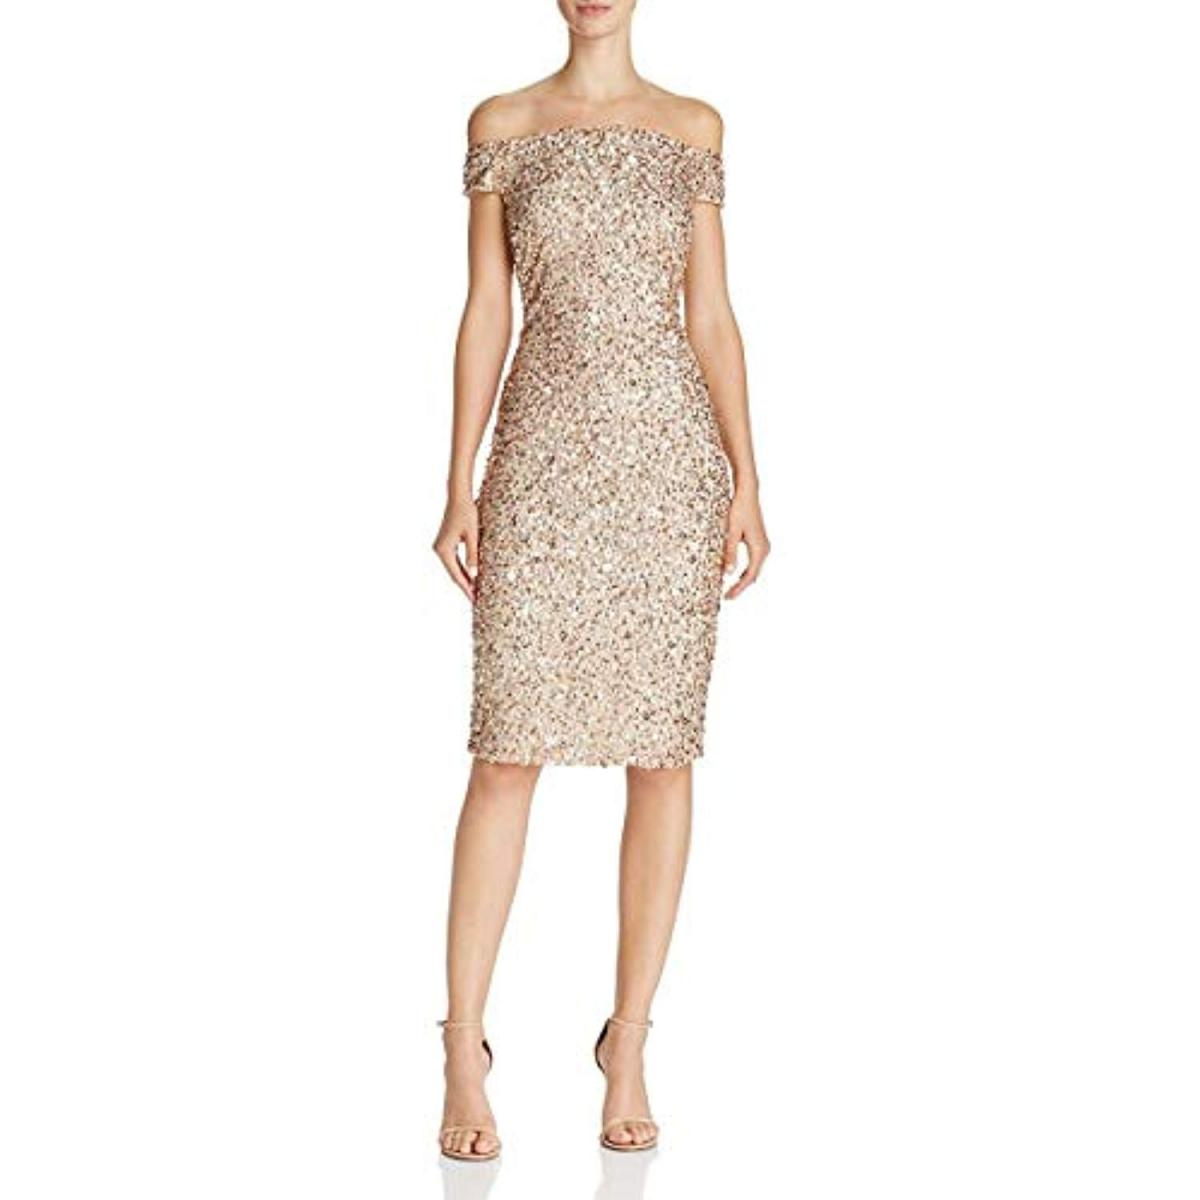 Adrianna Papell Womens Sequined Off The Shoulder Cocktail Dressレディースドレス Champagne SilverkZnNX8wOP0